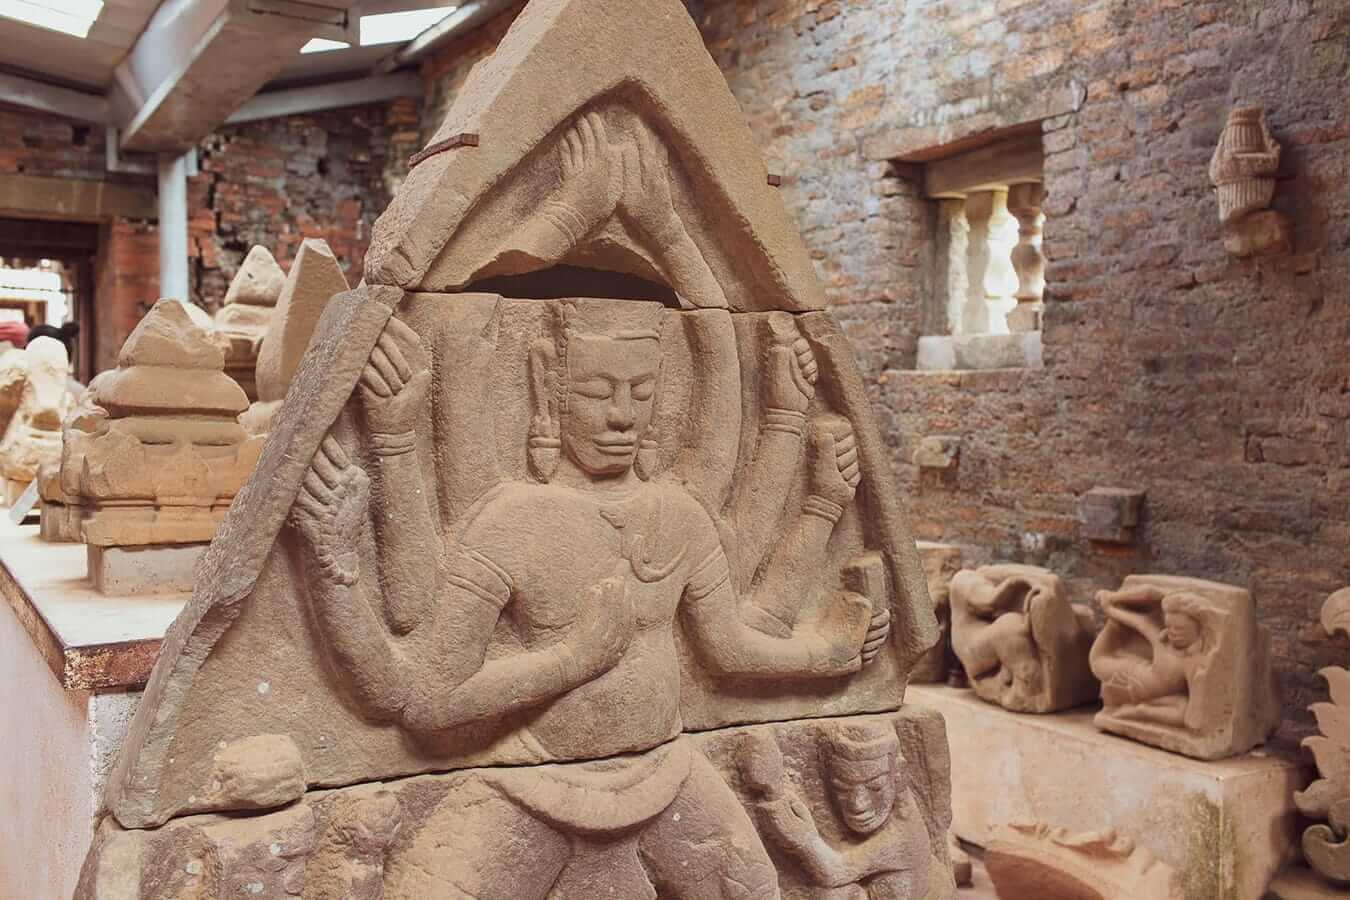 Stone carving at My Son Sanctuary